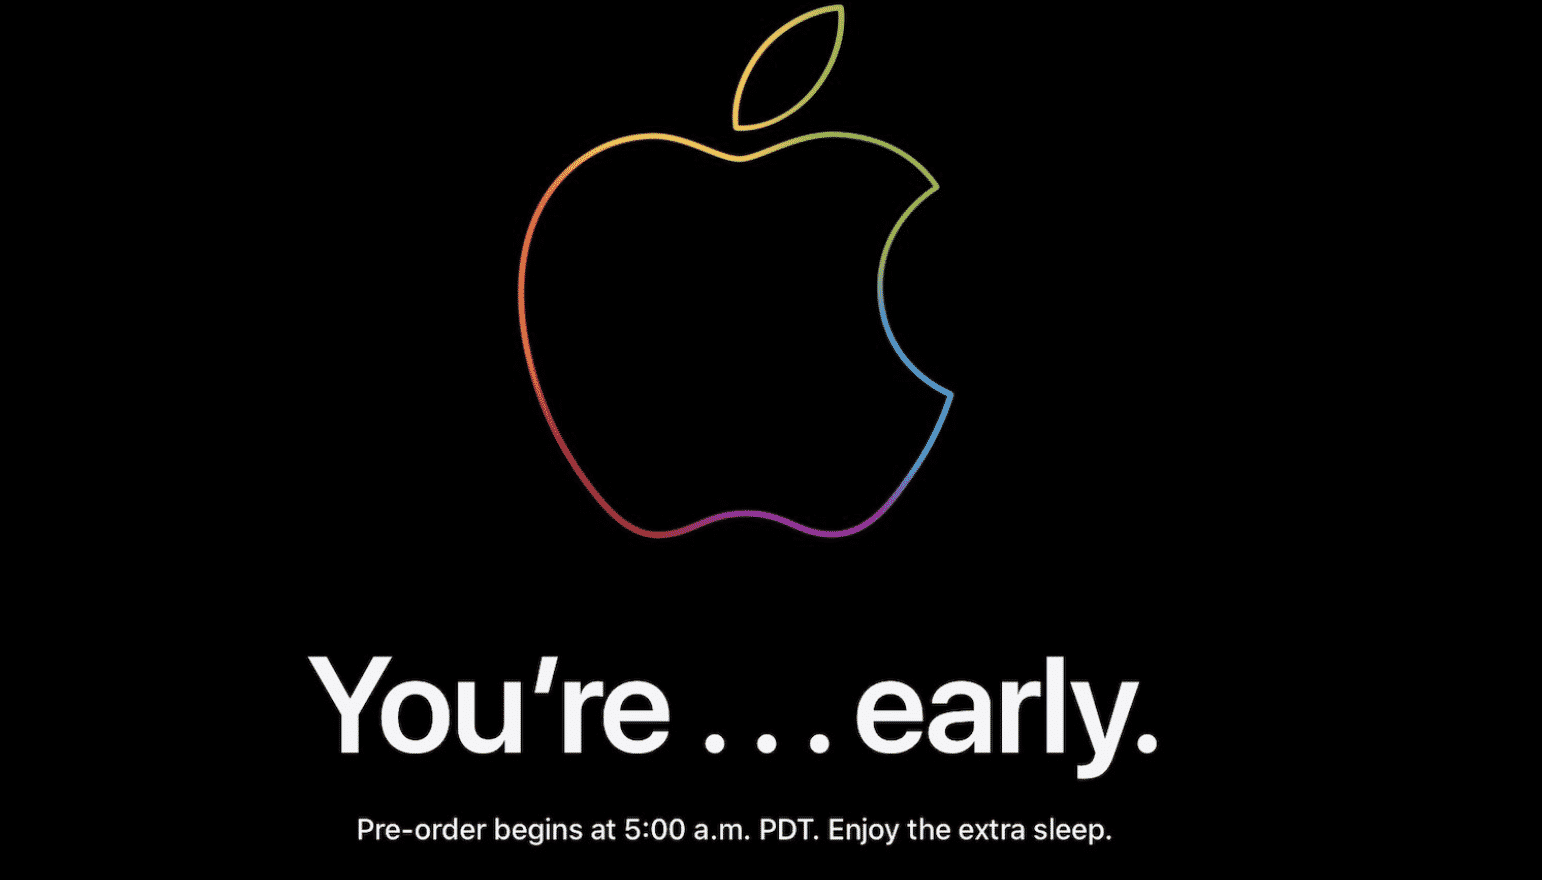 Apple iPhone 13 and 13 Pro Pre-Order page shows 'You're Early' banner